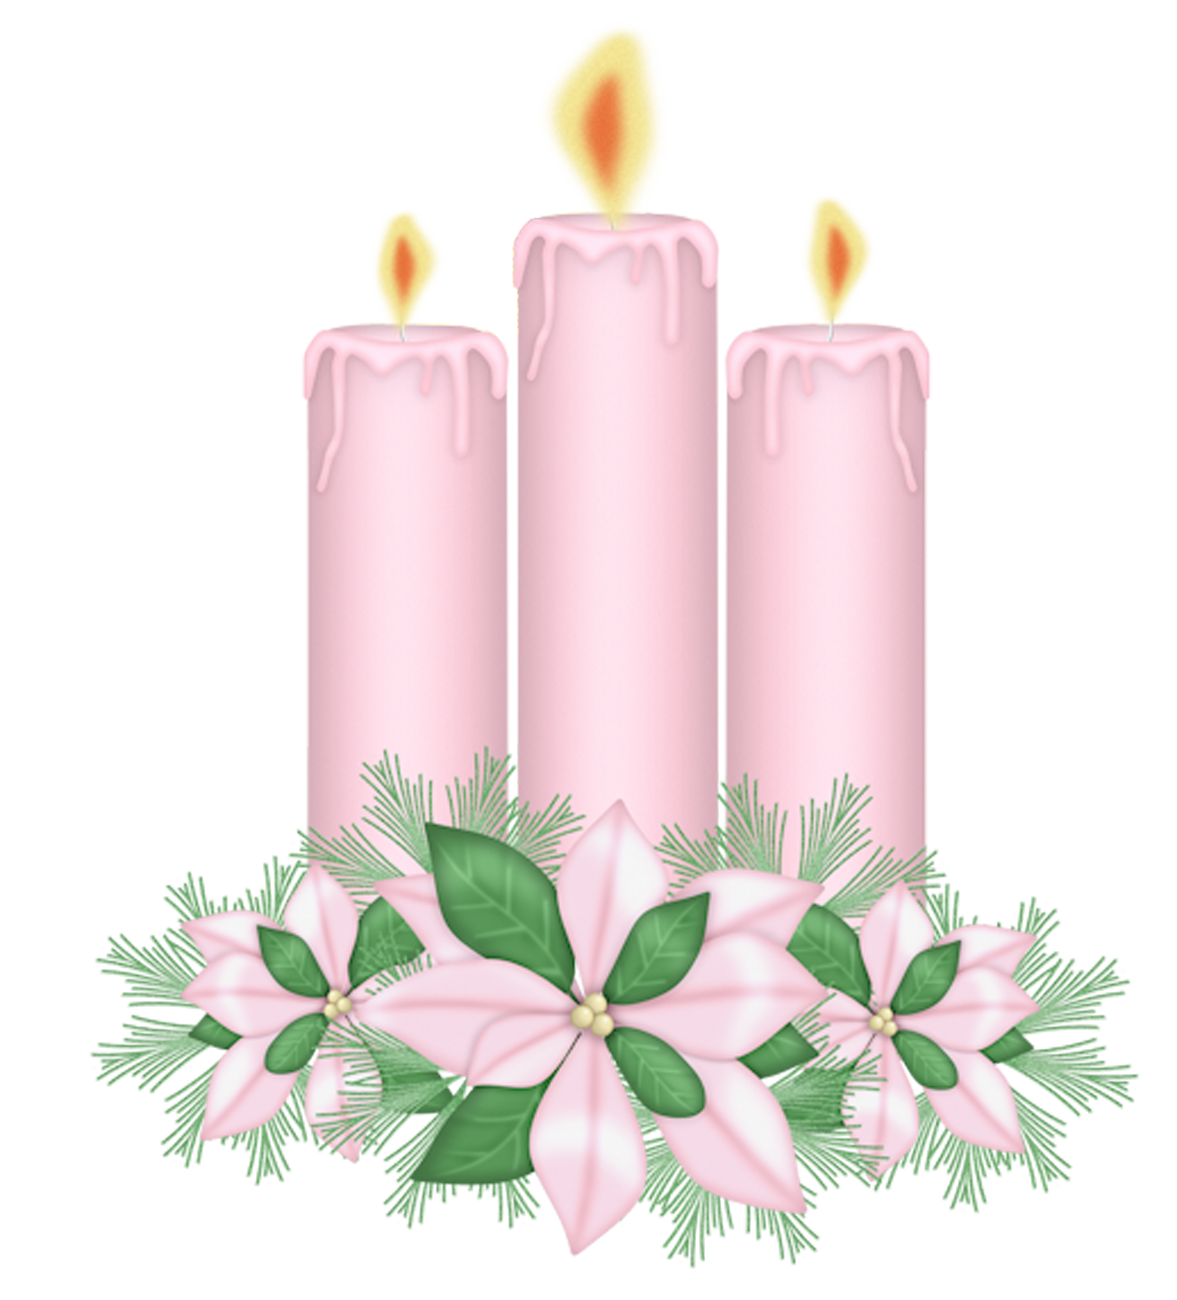 Candle clipart pink. Candles with flowers gallery